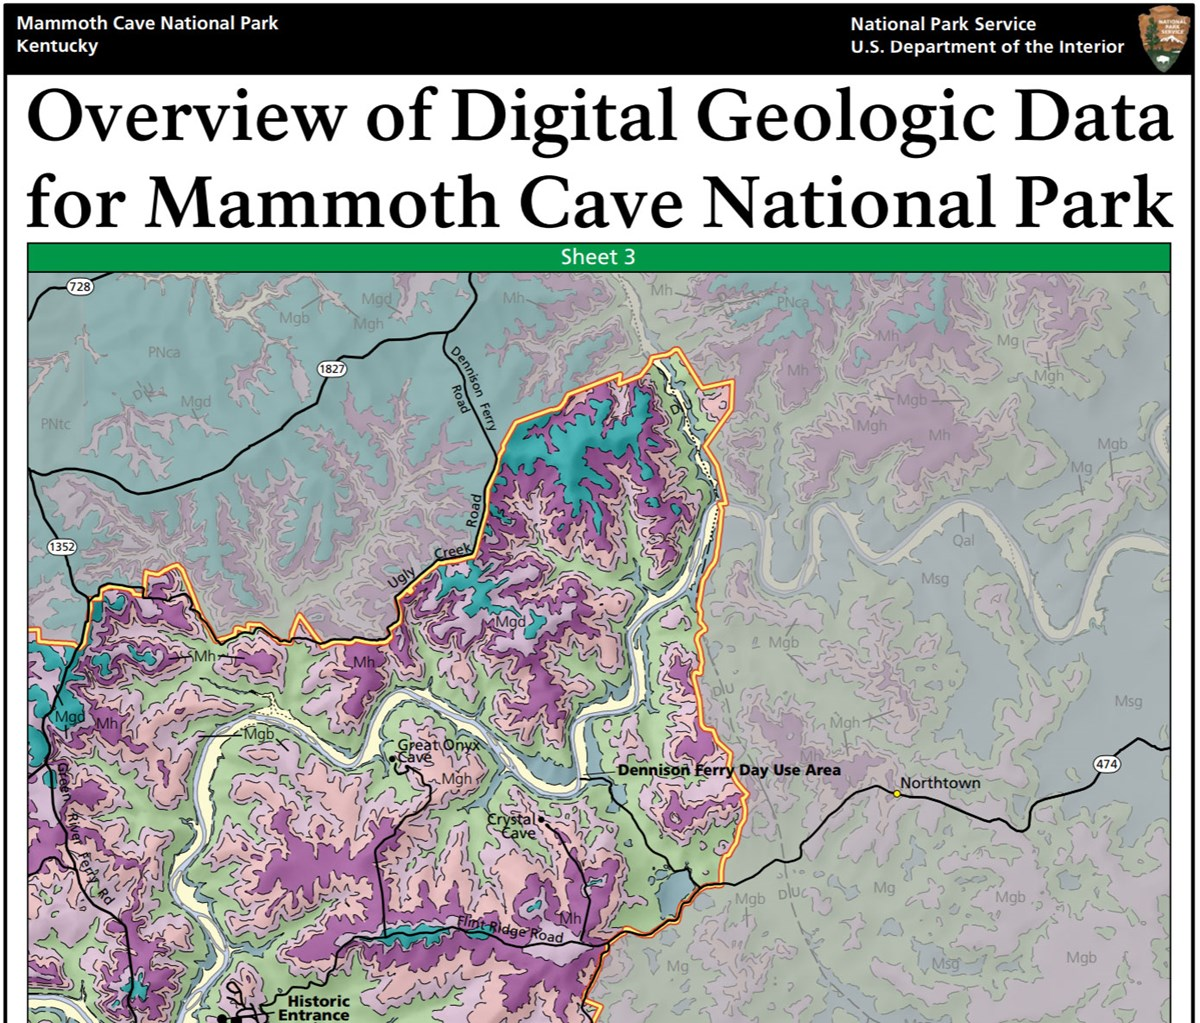 NPS Geodiversity Atlas—Mammoth Cave National Park, Kentucky ... on endless caverns map, cave junction oregon map, wind cave national park map, the land of painted caves map, mammoth caves tennessee, glacier national park, shenandoah national park, carlsbad caverns national park, yellowstone national park on a map, hawaii volcanoes national park, great smoky mountains national park, colorado river map, sequoia national park, crater lake national park, u.s. forest map, grand canyon national park, jewel cave national monument, badlands national park, bigfoot cave map, ky state parks map, mesa verde national park, petrified forest map, wonder cave map, acadia national park, cosmic cavern map, caves in new mexico map, black canyon of the gunnison map, sylvan cave map, timpanogos cave national monument map, hot springs national park, olympic national park, great onyx cave map, cuyahoga valley national park, yosemite national park, redwood national and state parks, cave of the winds map, wind cave national park, mountain river cave vietnam map,